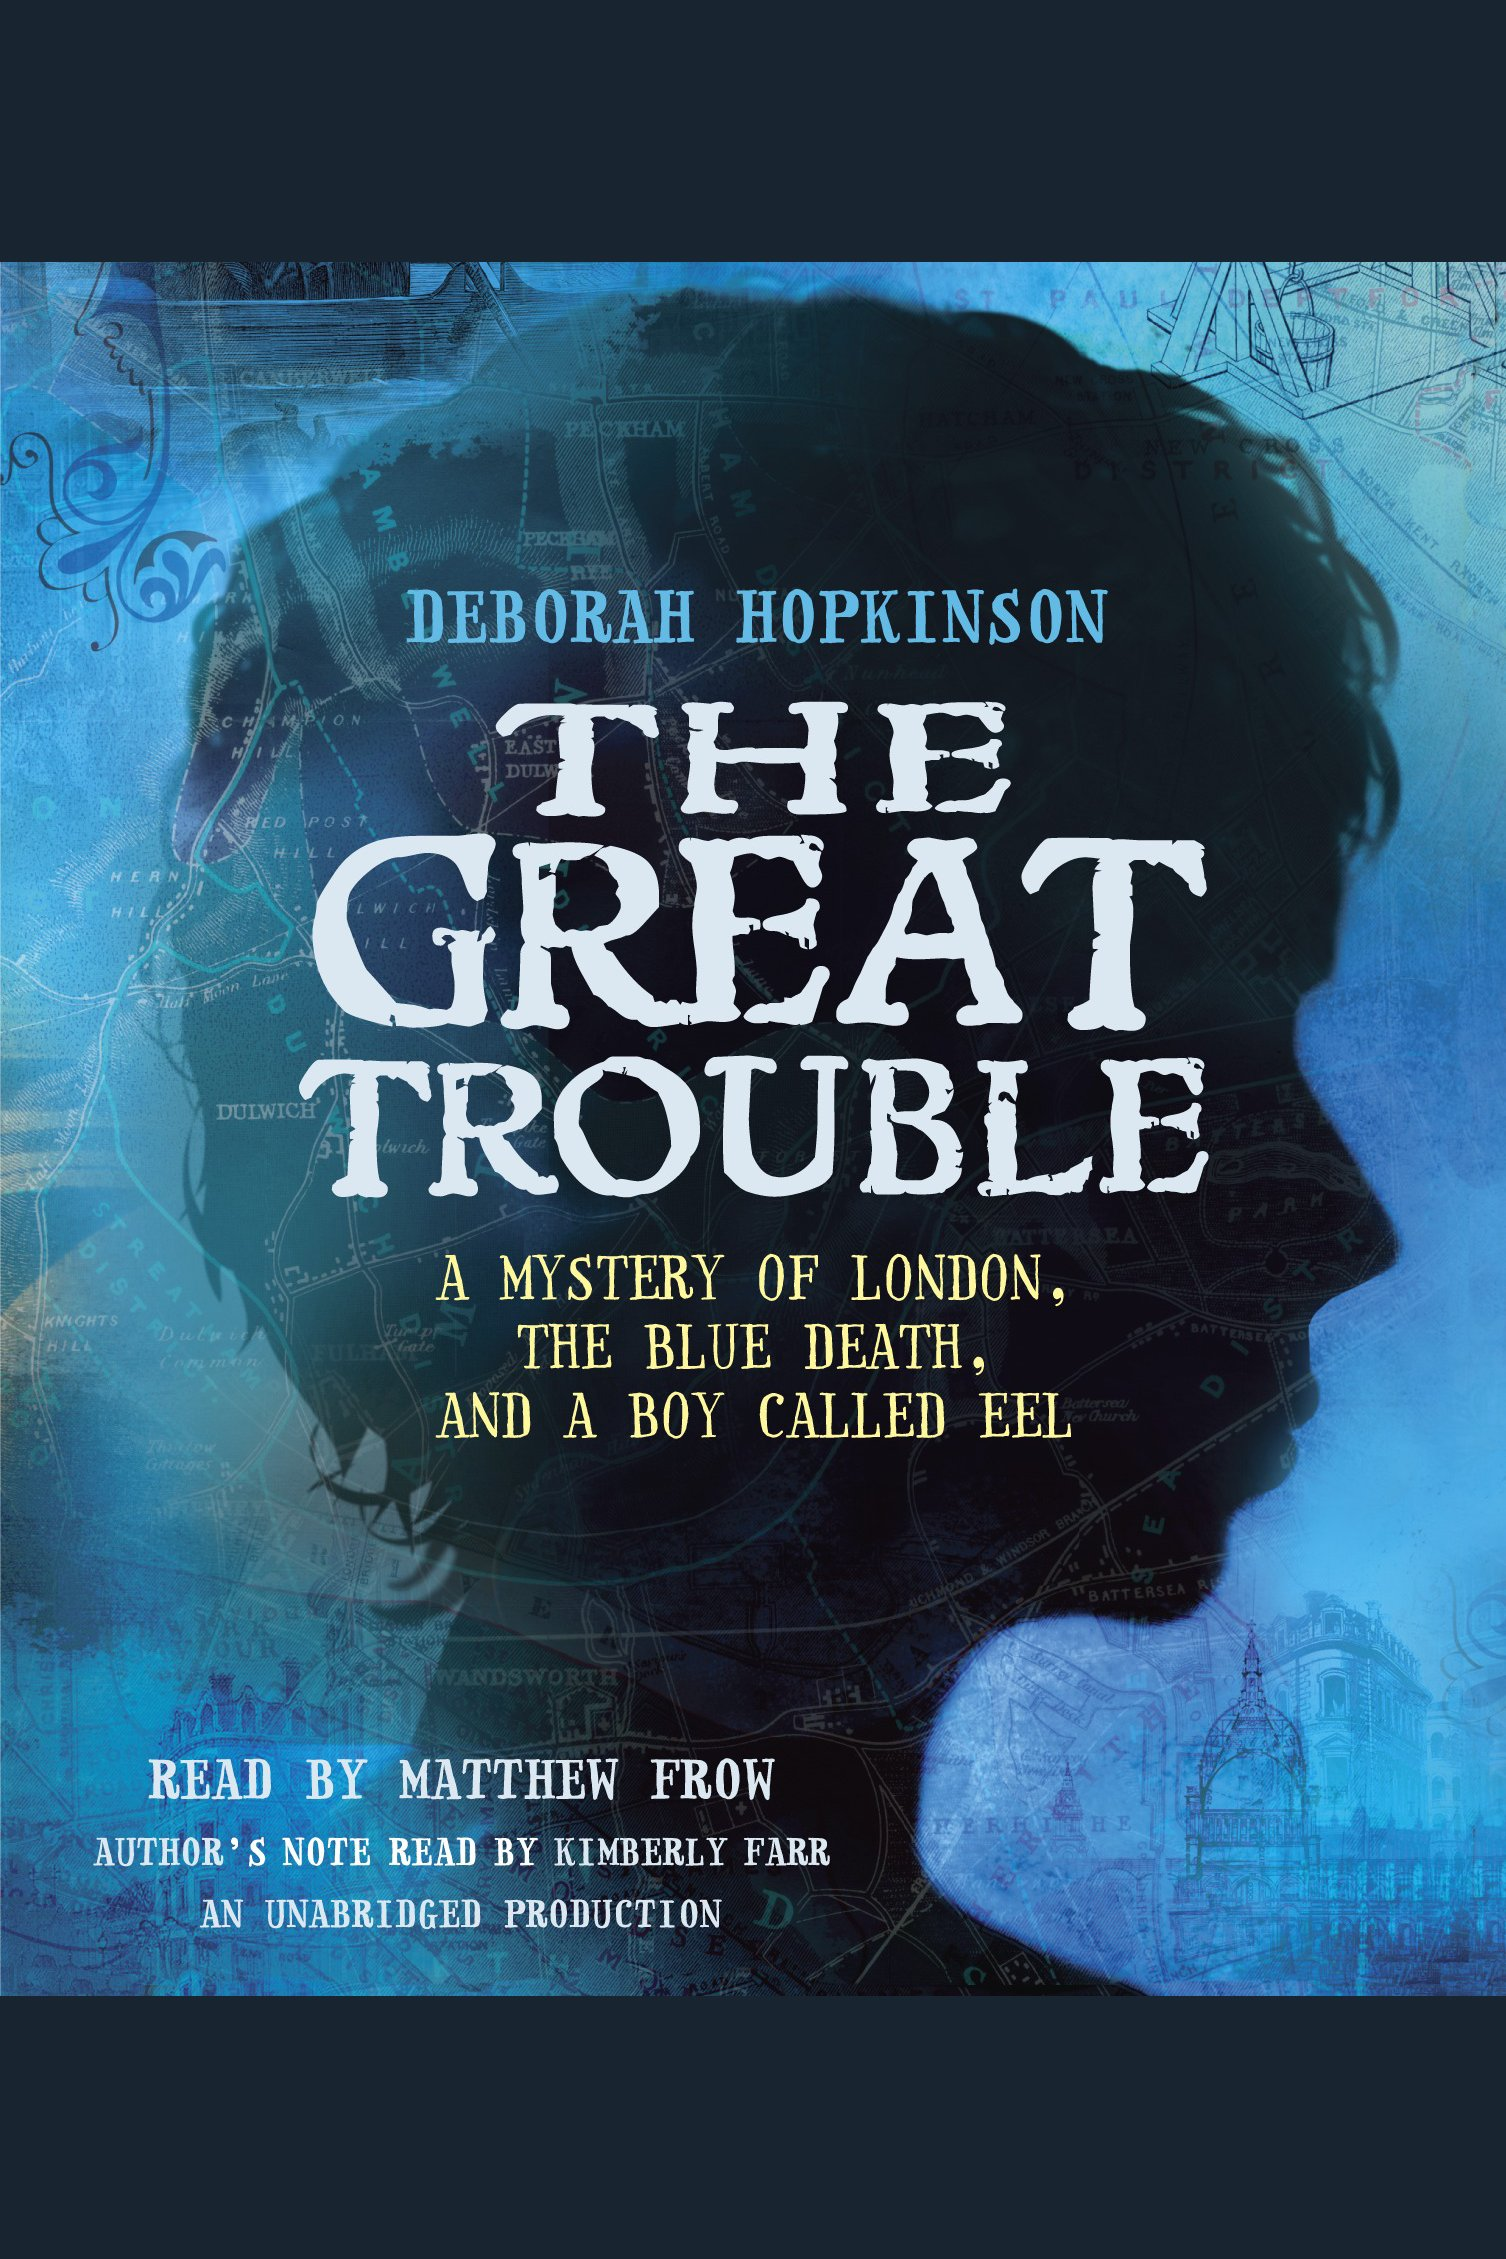 The great trouble a mystery of London, the blue death, and a boy called Eel cover image